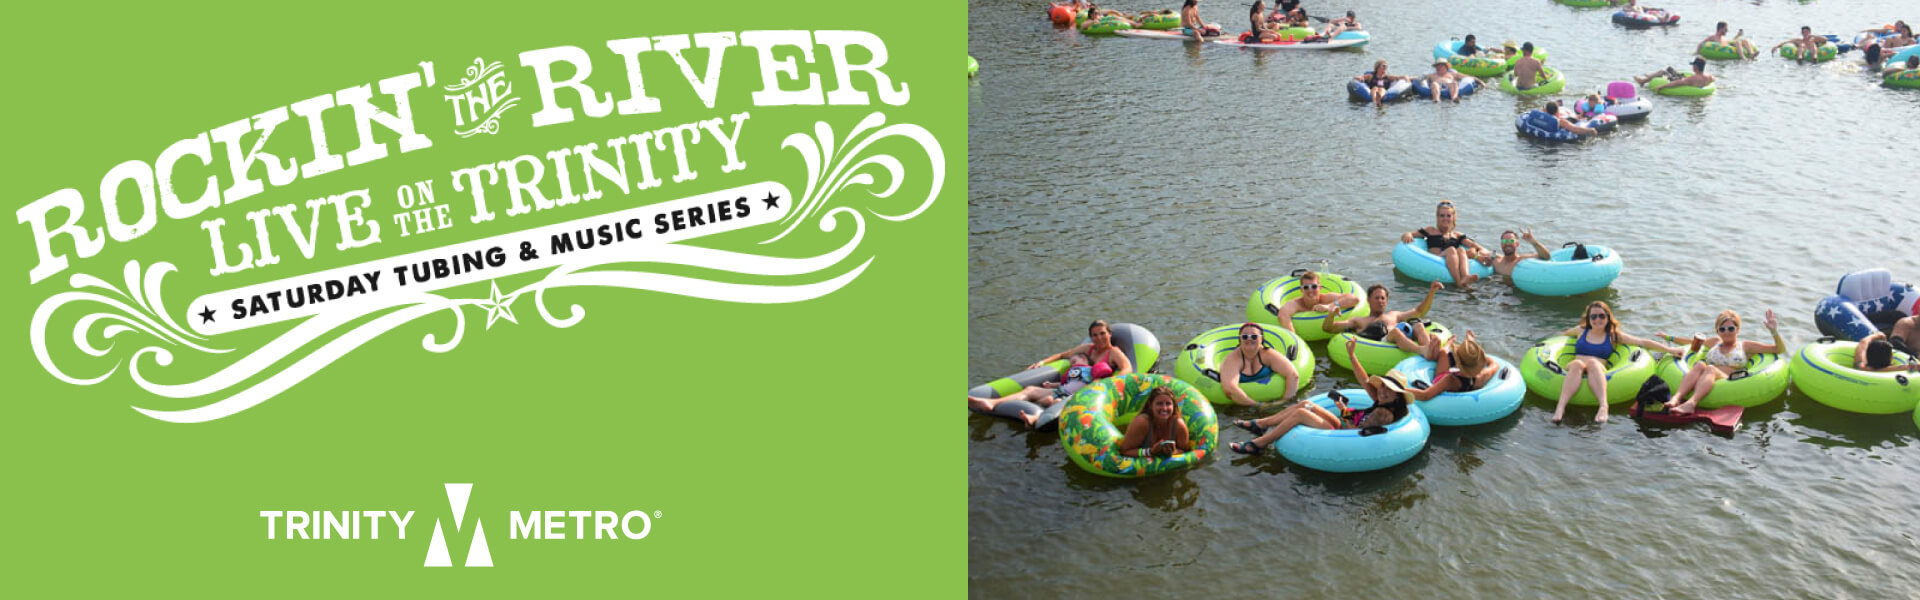 people tubing on the trinity river